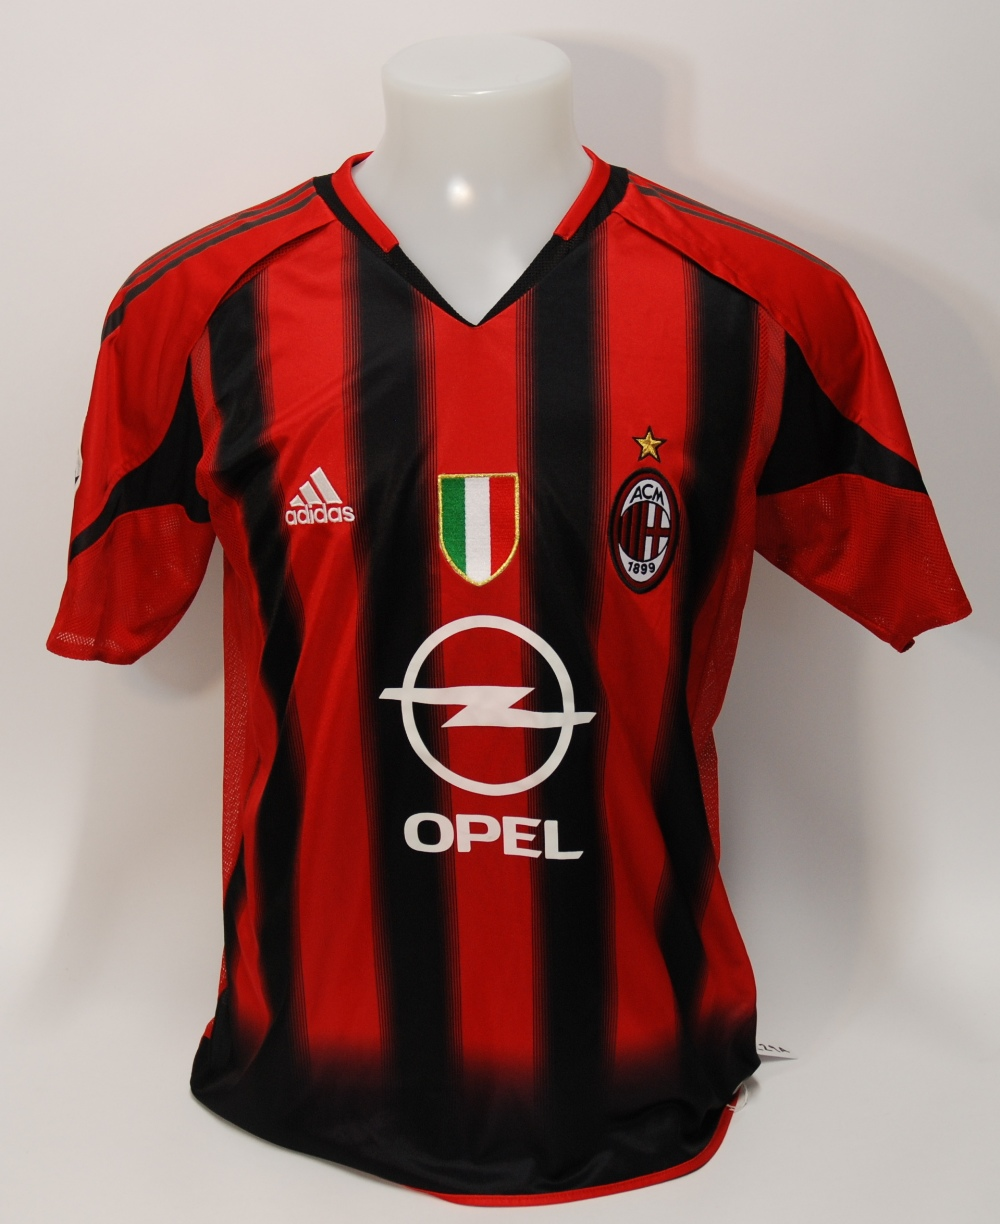 Lot 229A - A red and black AC Milan short-sleeved shirt No.8, v-neck collar and embroidered cloth badge,